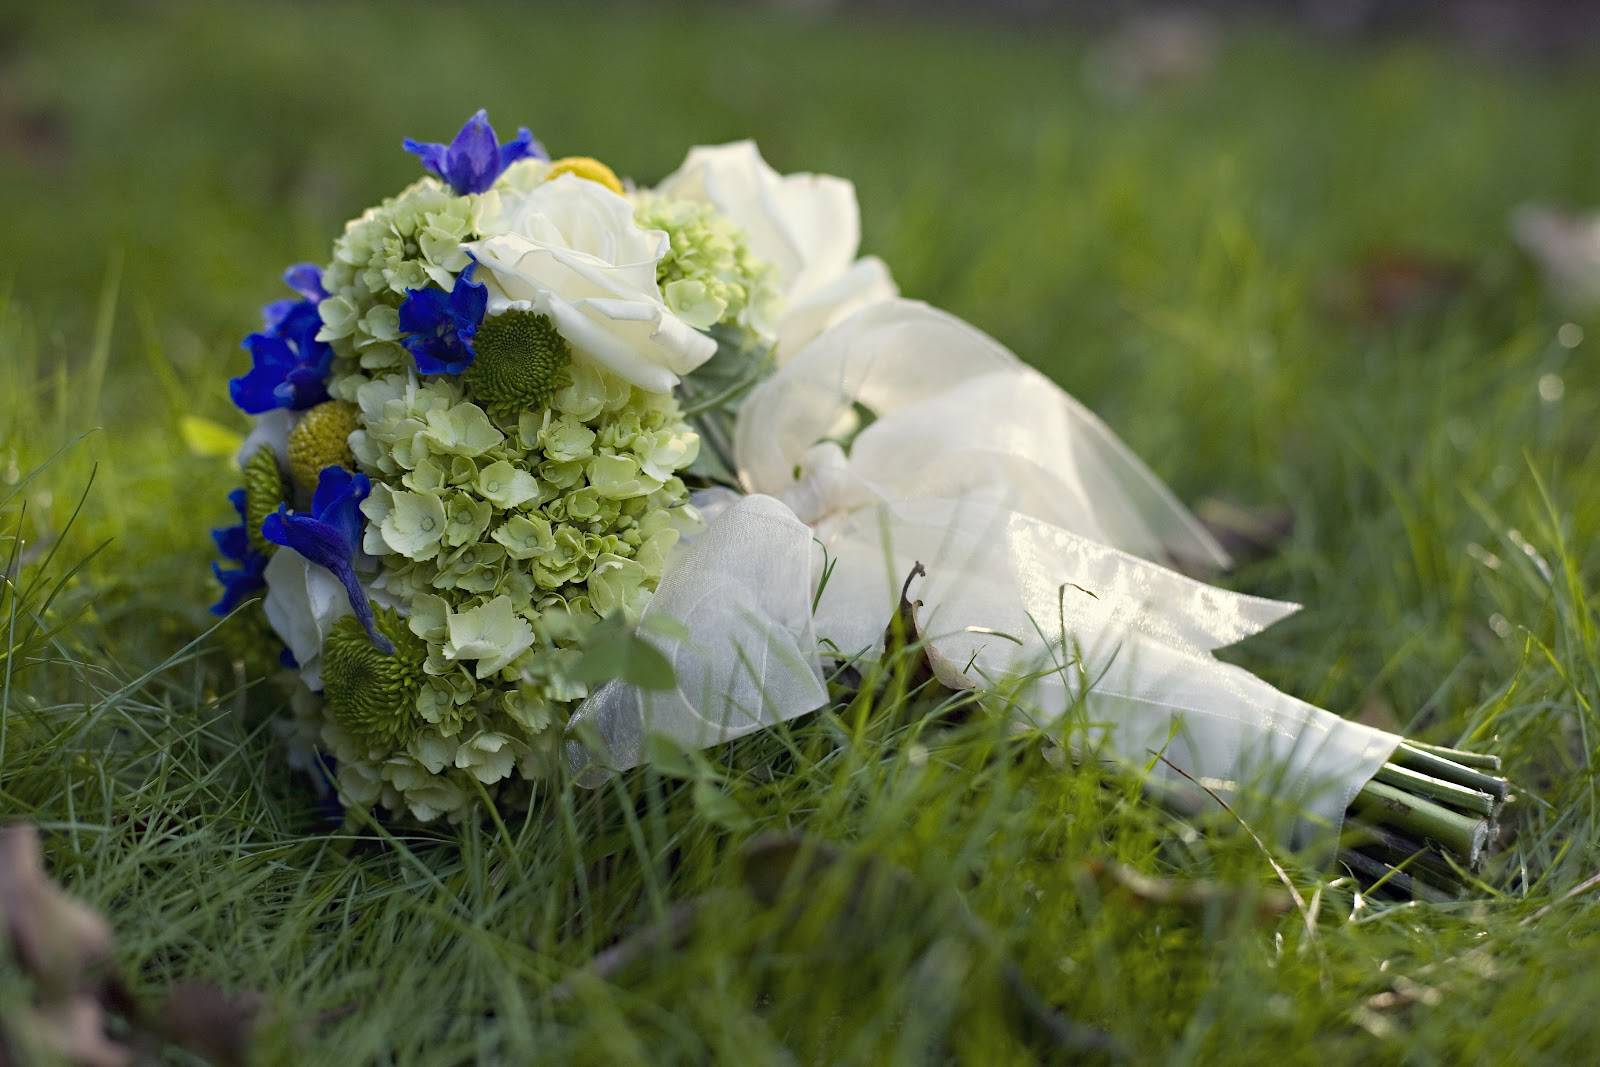 Tallahassee Florist Wedding At Shiloh Farms By Tallahassee Florist